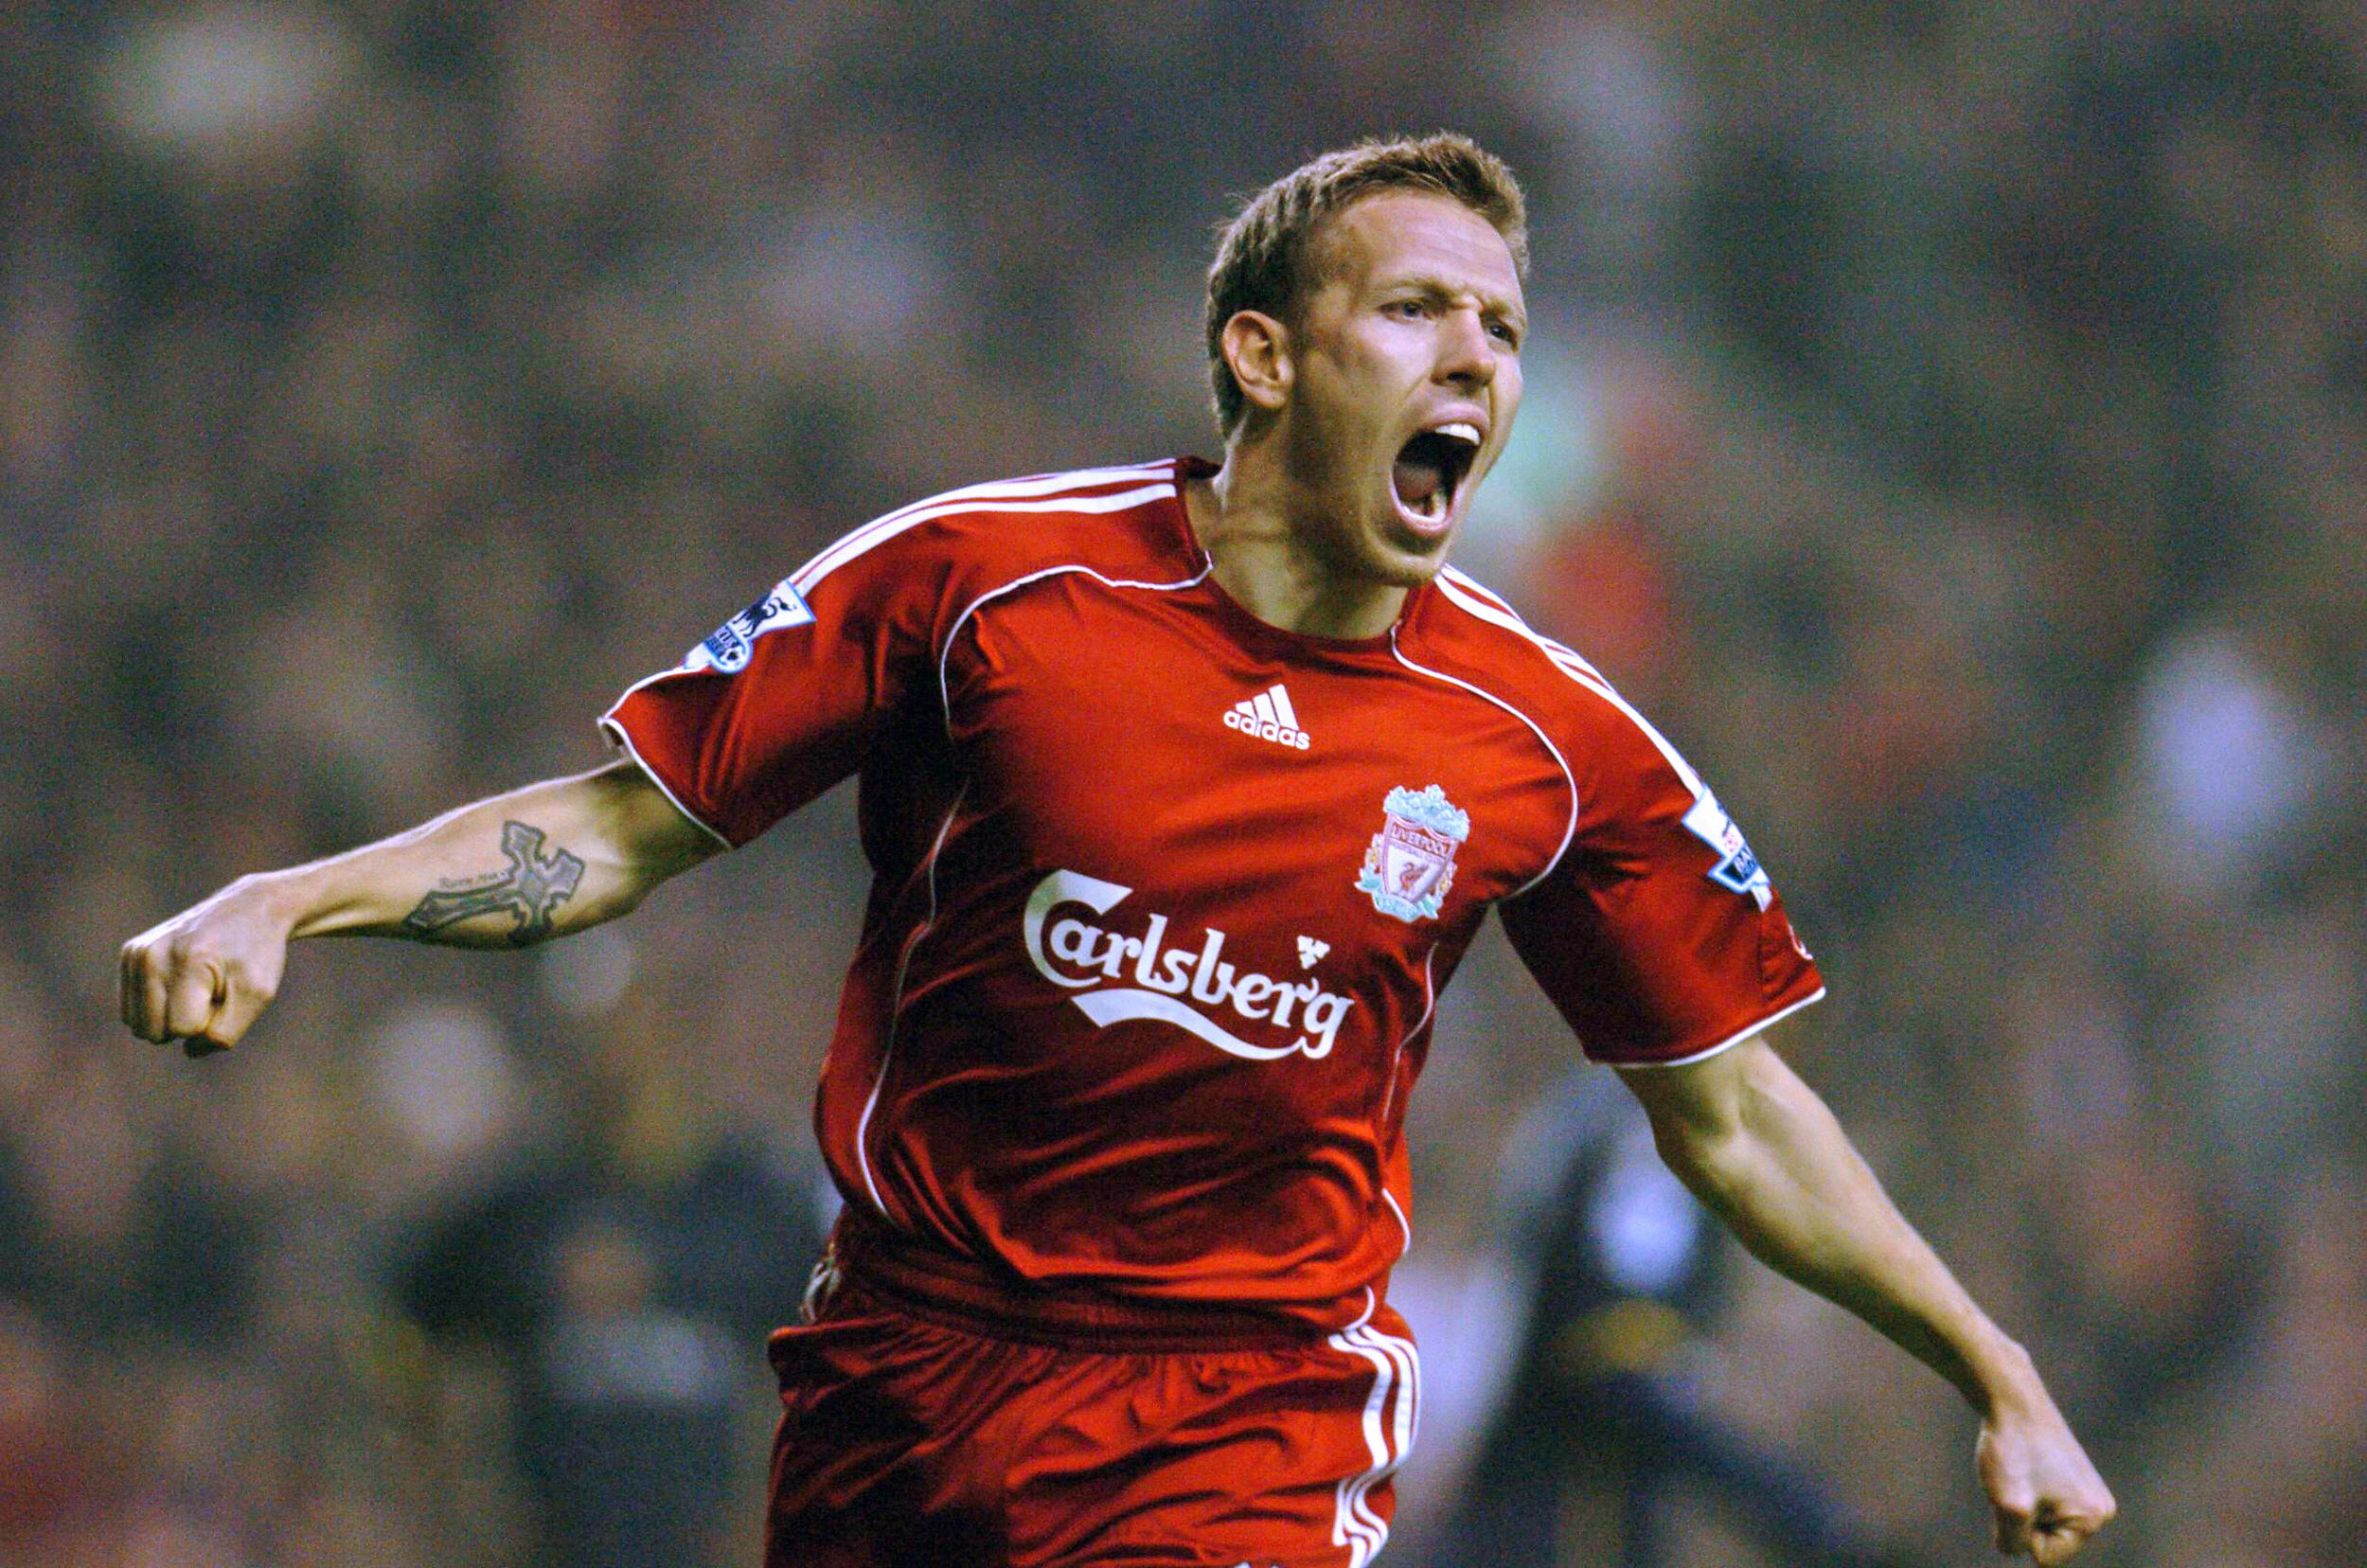 Liverpool, UNITED KINGDOM: (FILES) Craig Bellamy celebrates after scoring against Watford at Anfield, in Liverpool, 23 December 2006. West Ham announced Tuesday 10 July 2007, the signing of Craig Bellamy from Liverpool for a fee of GBP7.5m. (approx 11m euros/15.1m USD) Bellamy has agreed a five year deal. AFP Photo/Paul Barker/FILES (Photo credit should read PAUL BARKER/AFP/Getty Images)